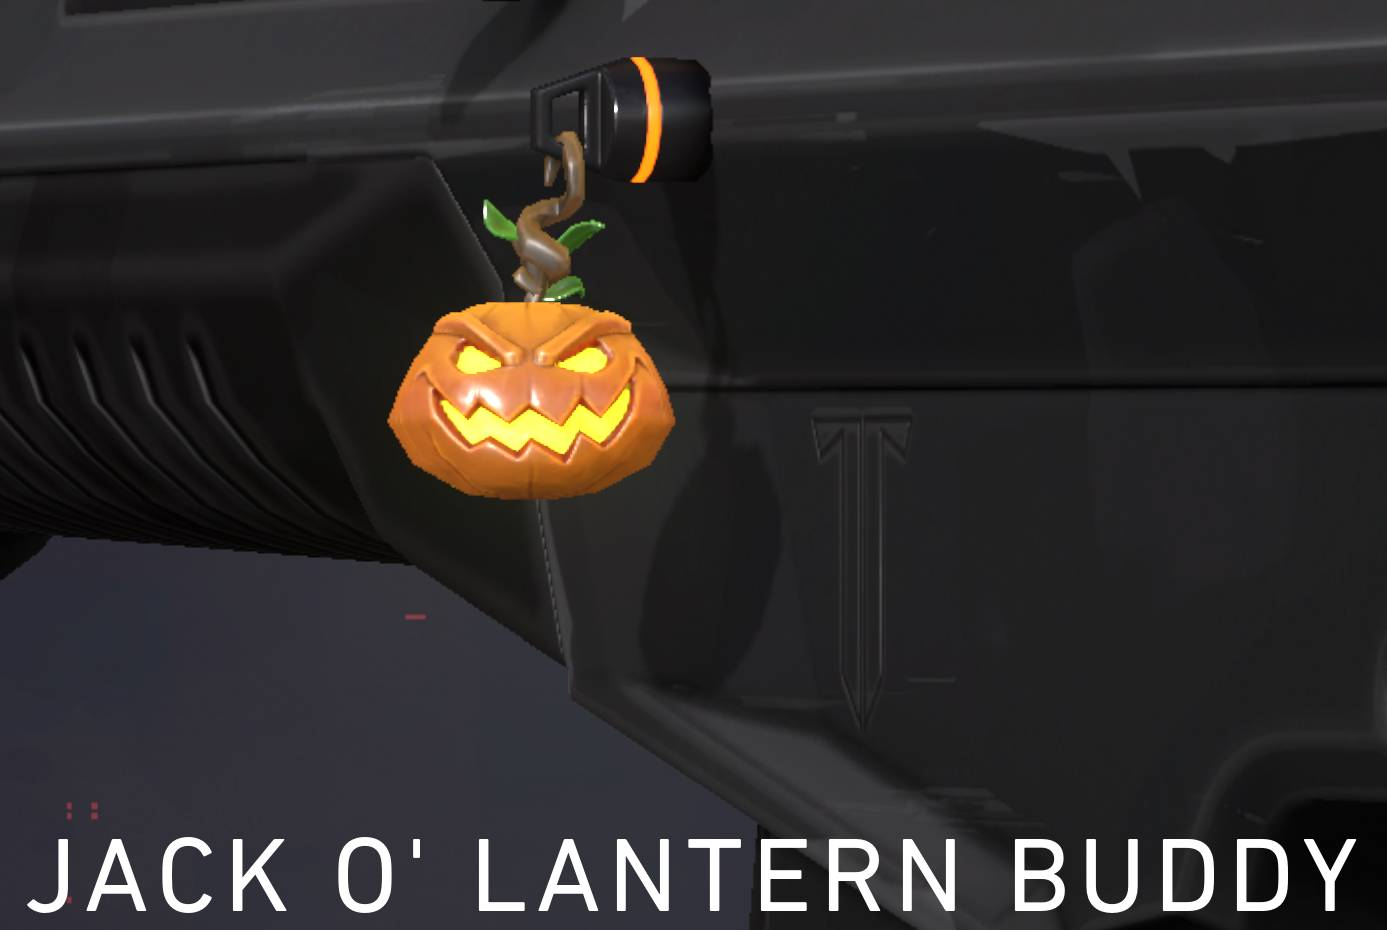 The Jack O'Lantern Gun Buddy. This reward is accessed in the premium path at tier 7.